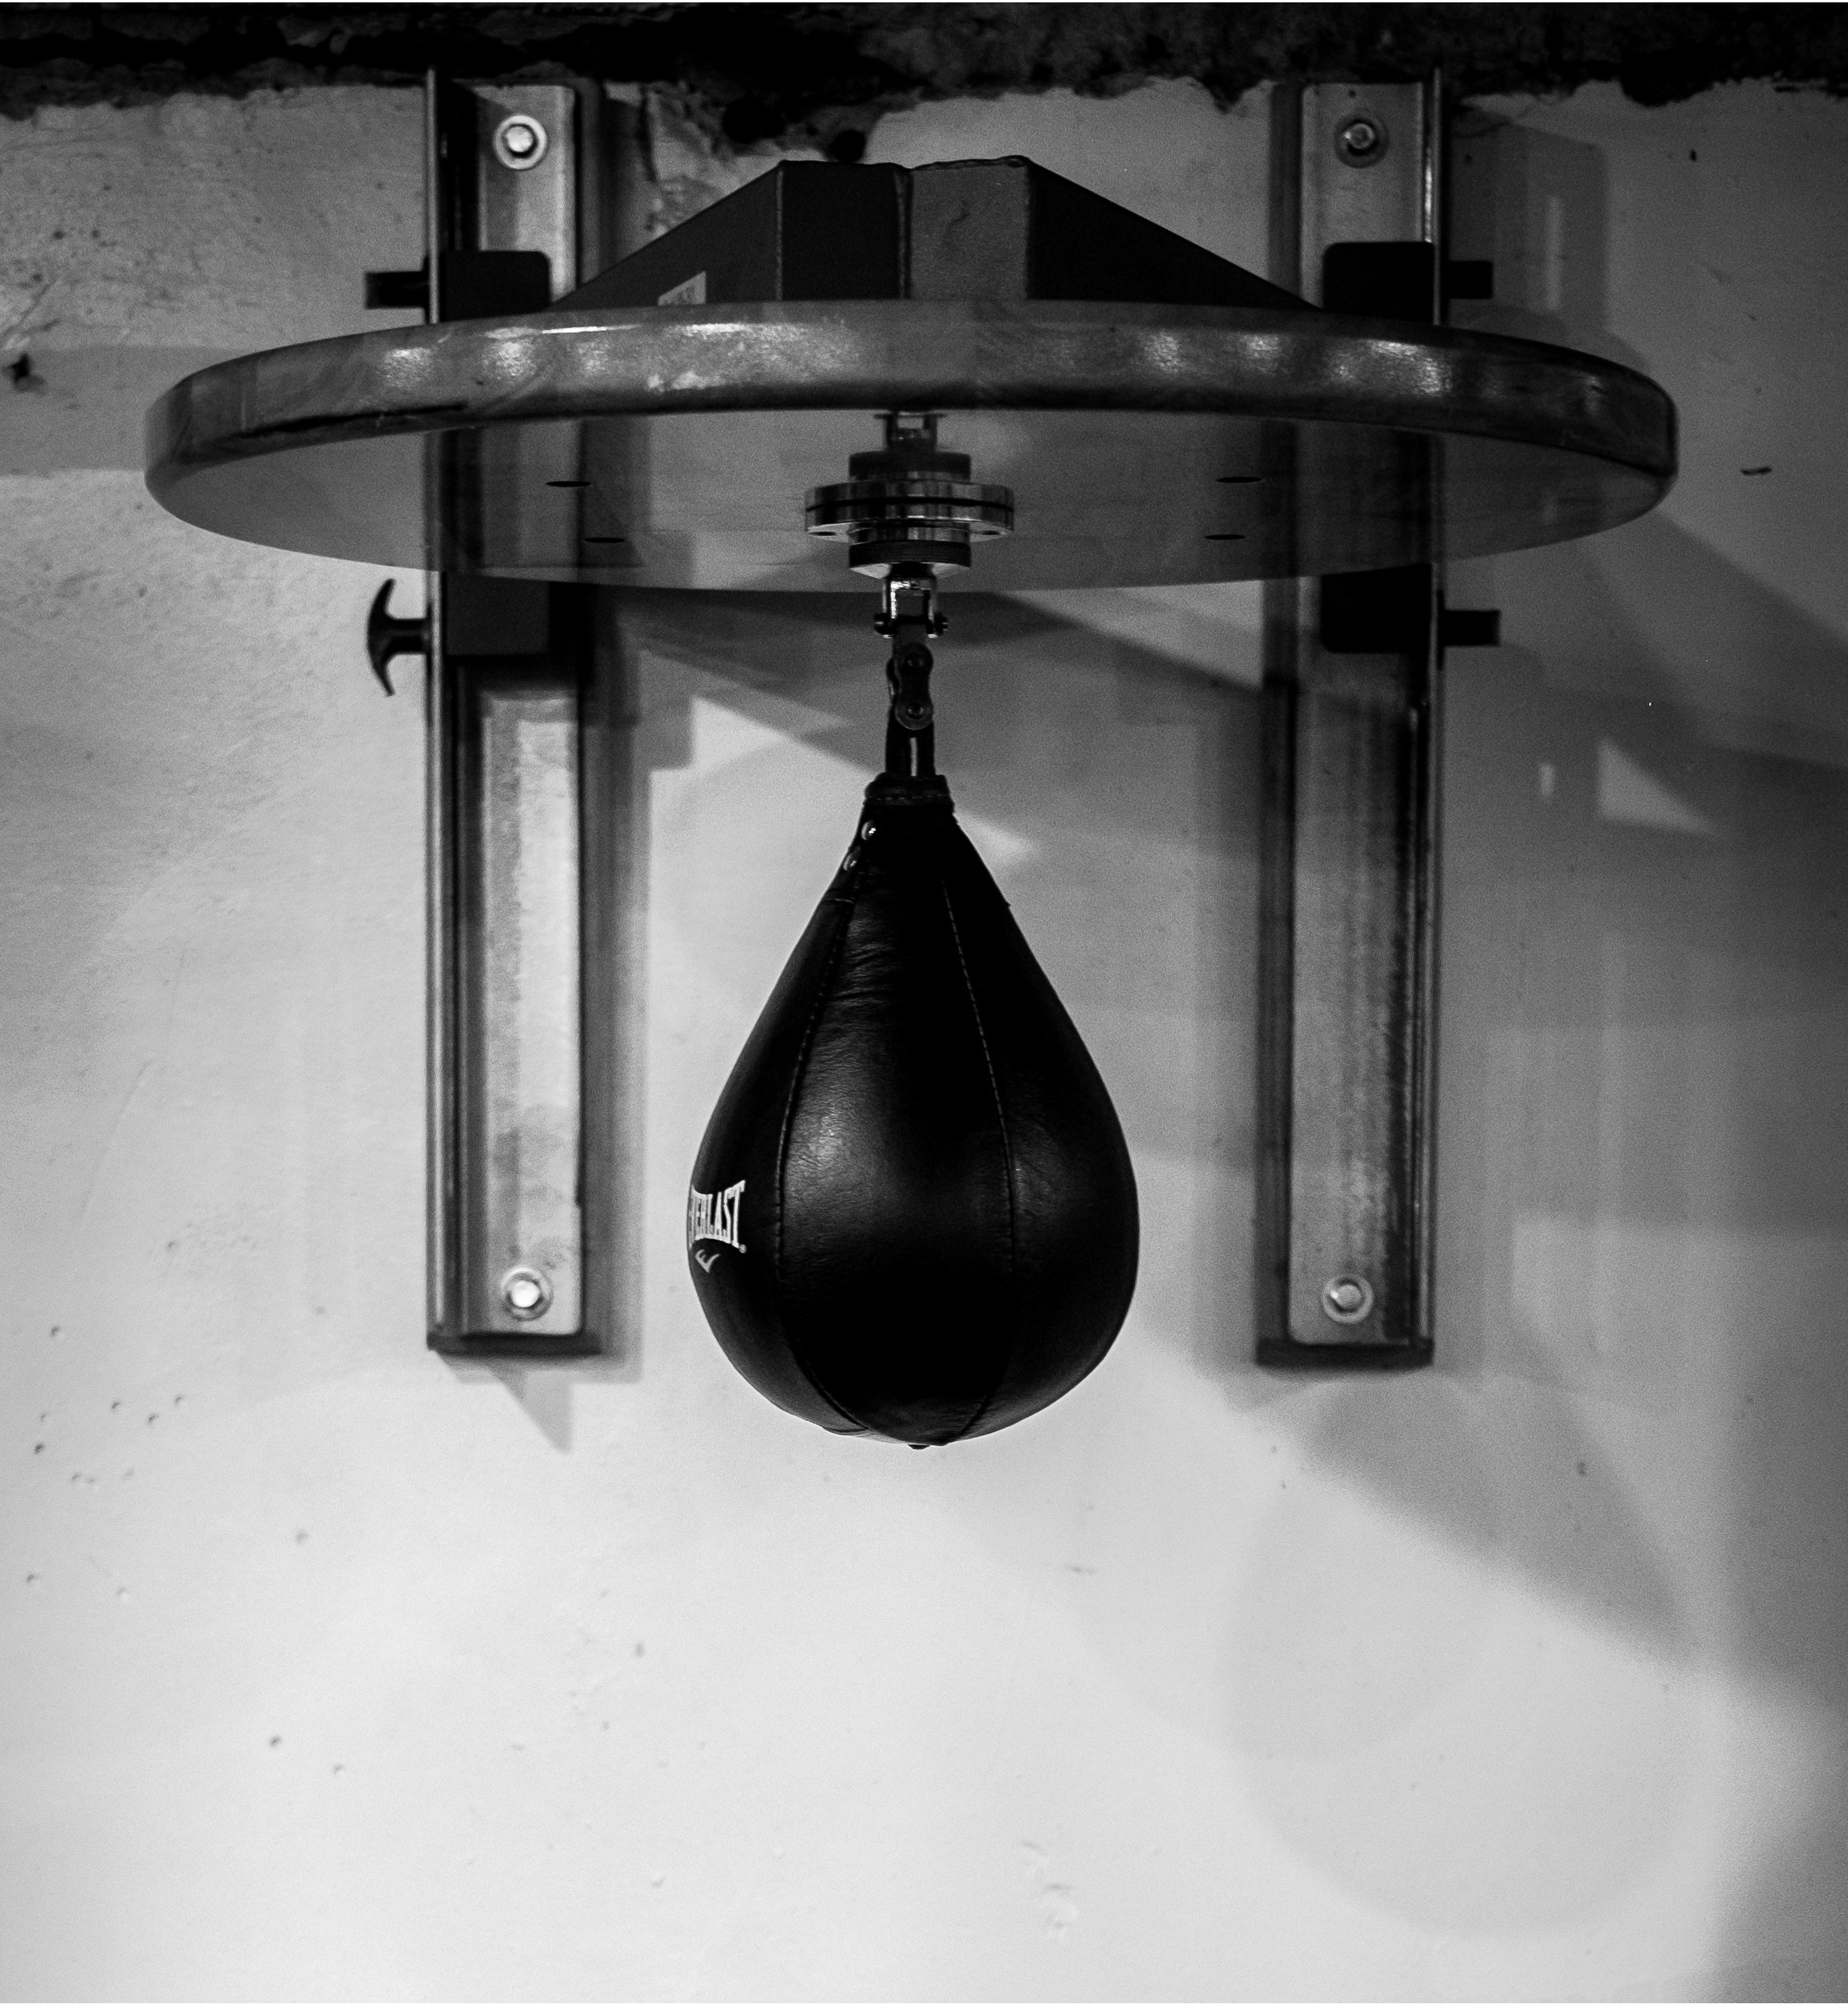 Boxing Memberships - Memberships are available for our downstairs boxing gym! Members have access to all the boxing equipment during our open hours.Monthly CostBoxing Membership: $50Unlimited Boxing Classes+Membership: $149.99*Memberships require 30 days notice for cancellation.